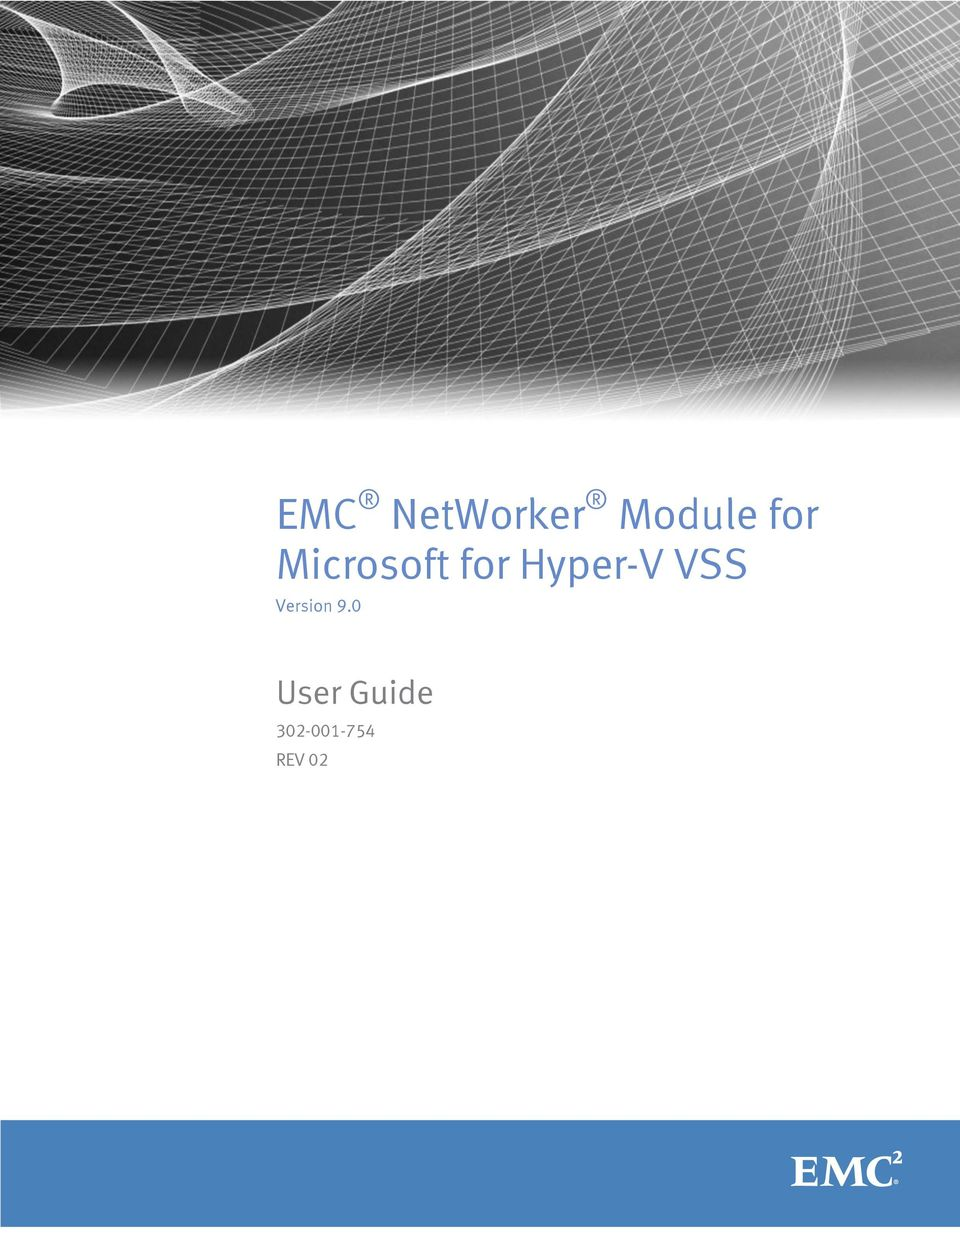 Hyper-V VSS Version 9.